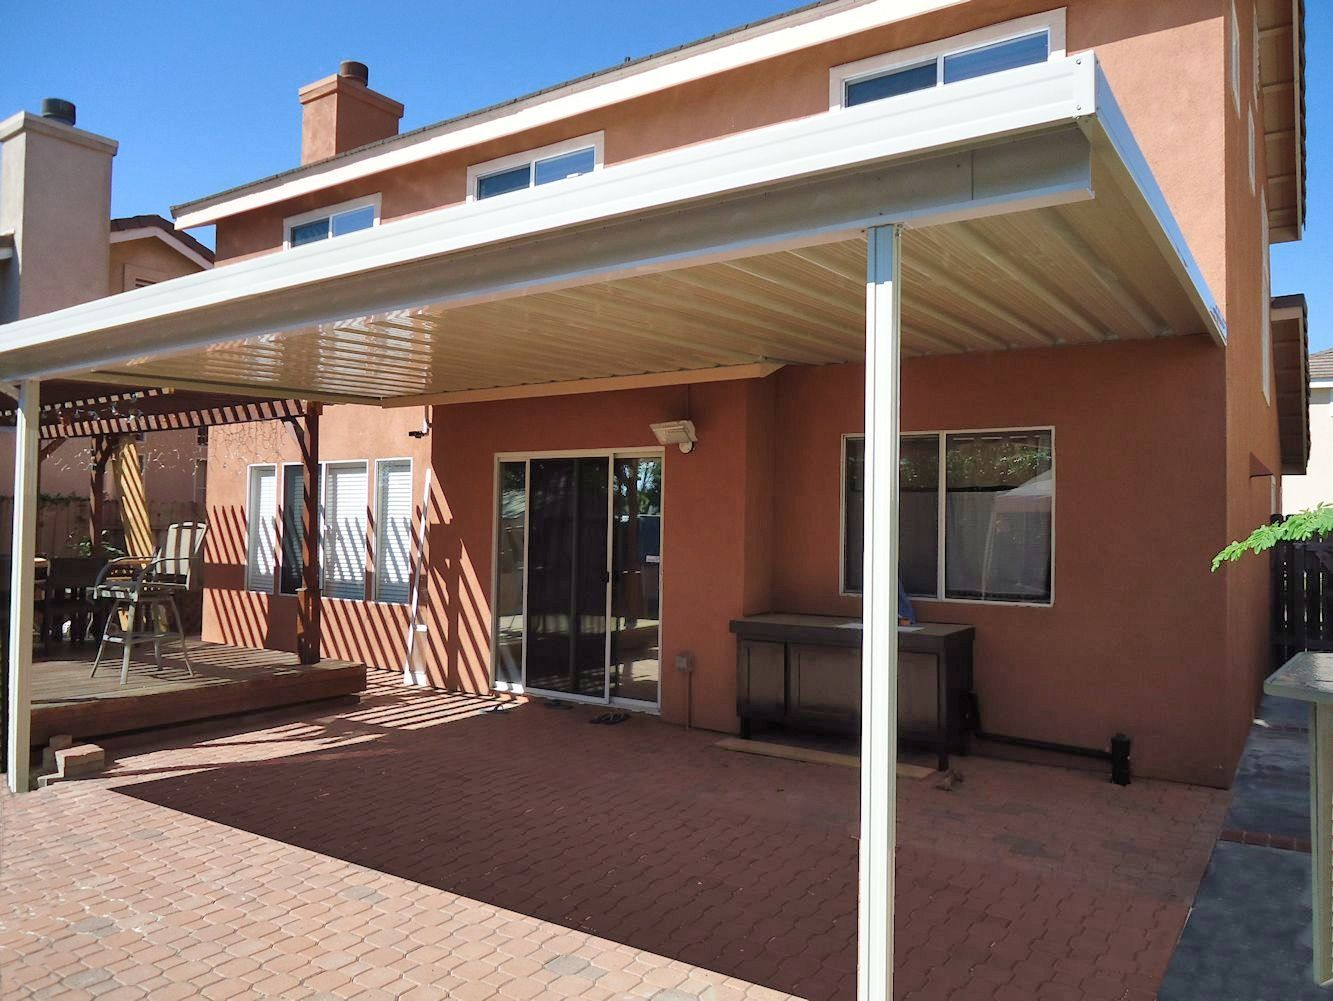 Are You Looking For An Honest And Reliable Aluminum Patio Cover Contractor Riverside We Aluminum Patio Covers Aluminum Patio Awnings Aluminum Patio Furniture